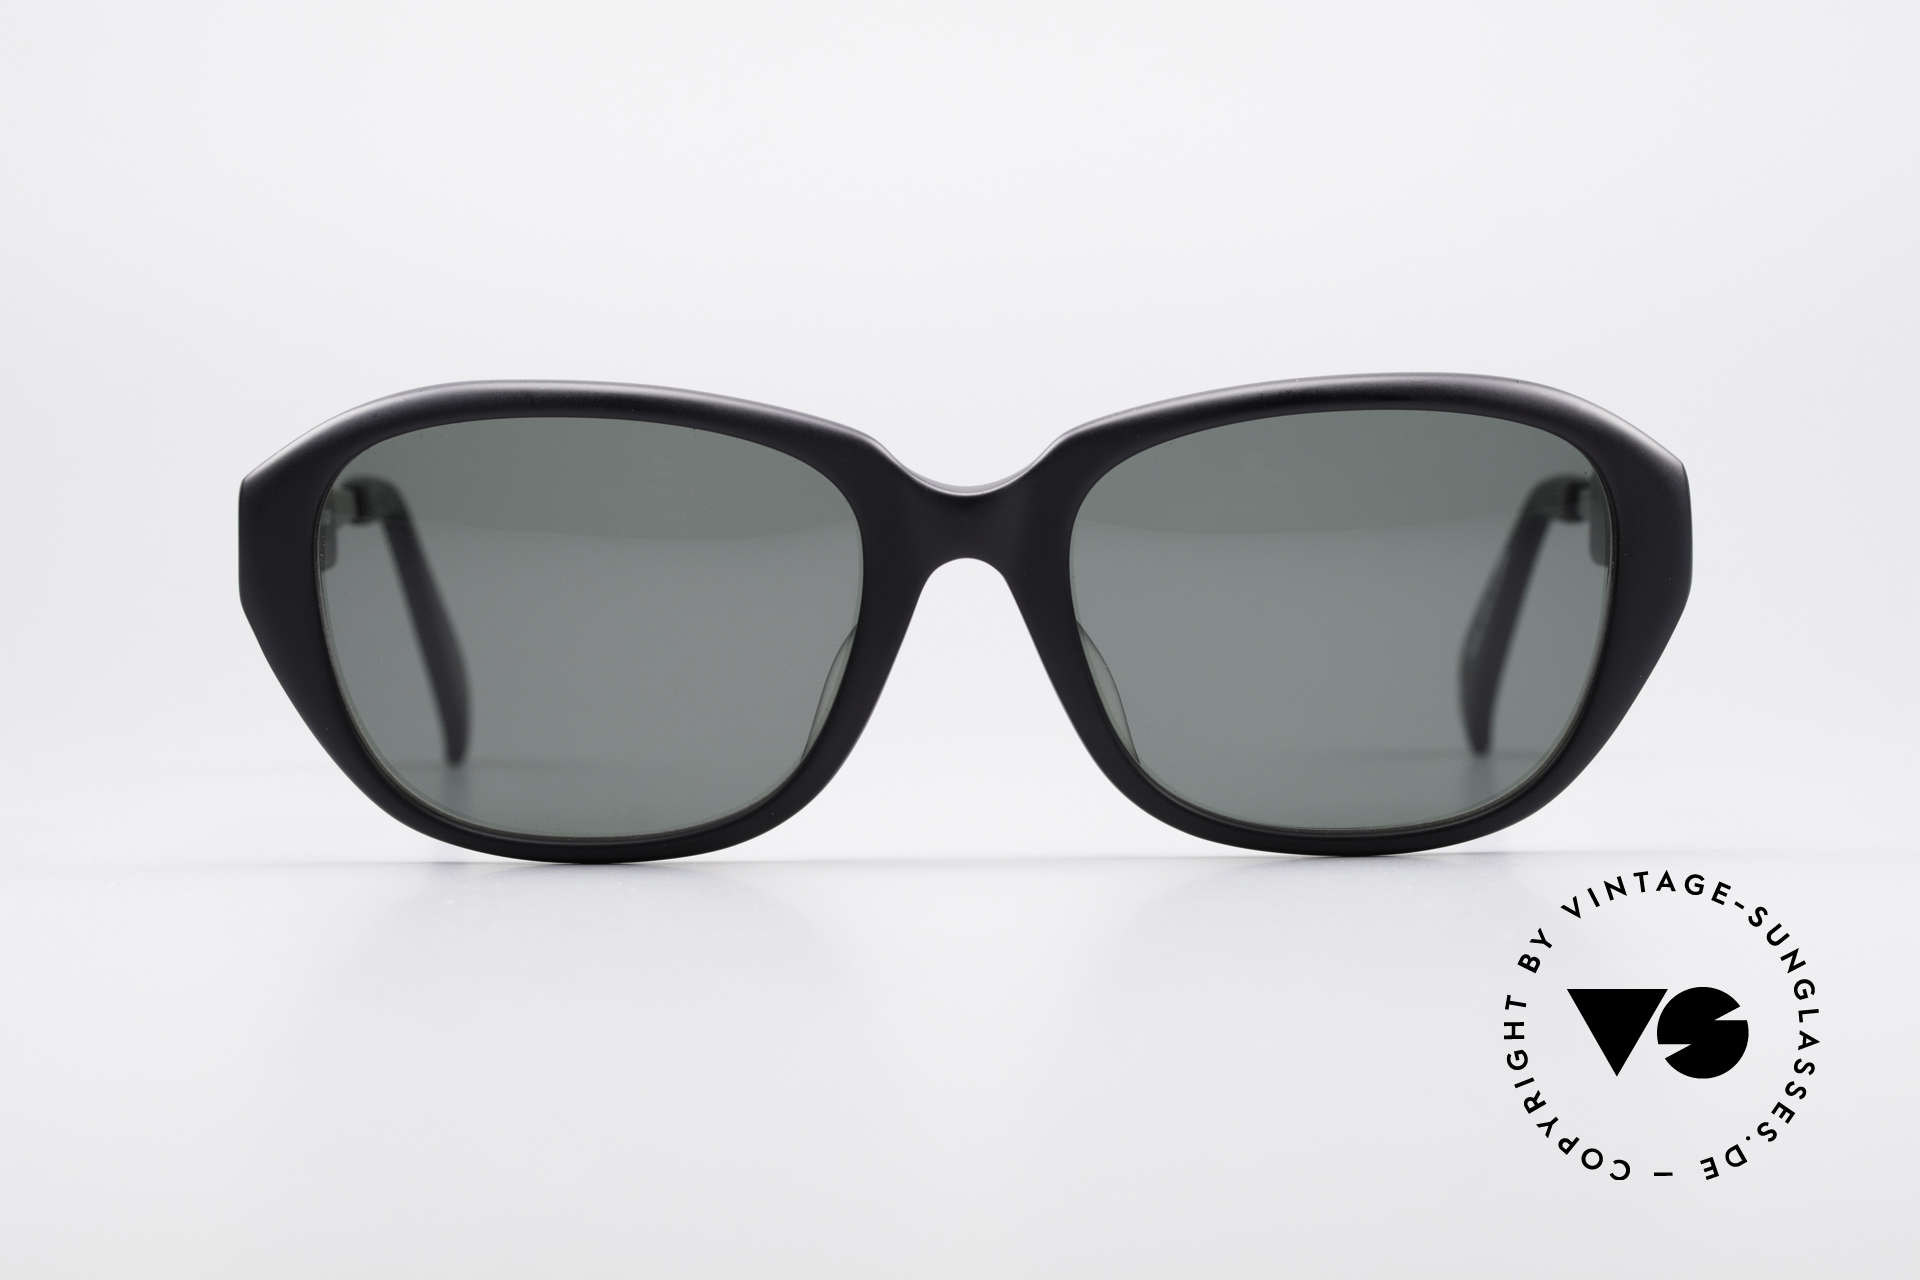 Jean Paul Gaultier 56-1072 Designer 90's Sunglasses, great combination of materials & colors; eye-catcher!, Made for Men and Women